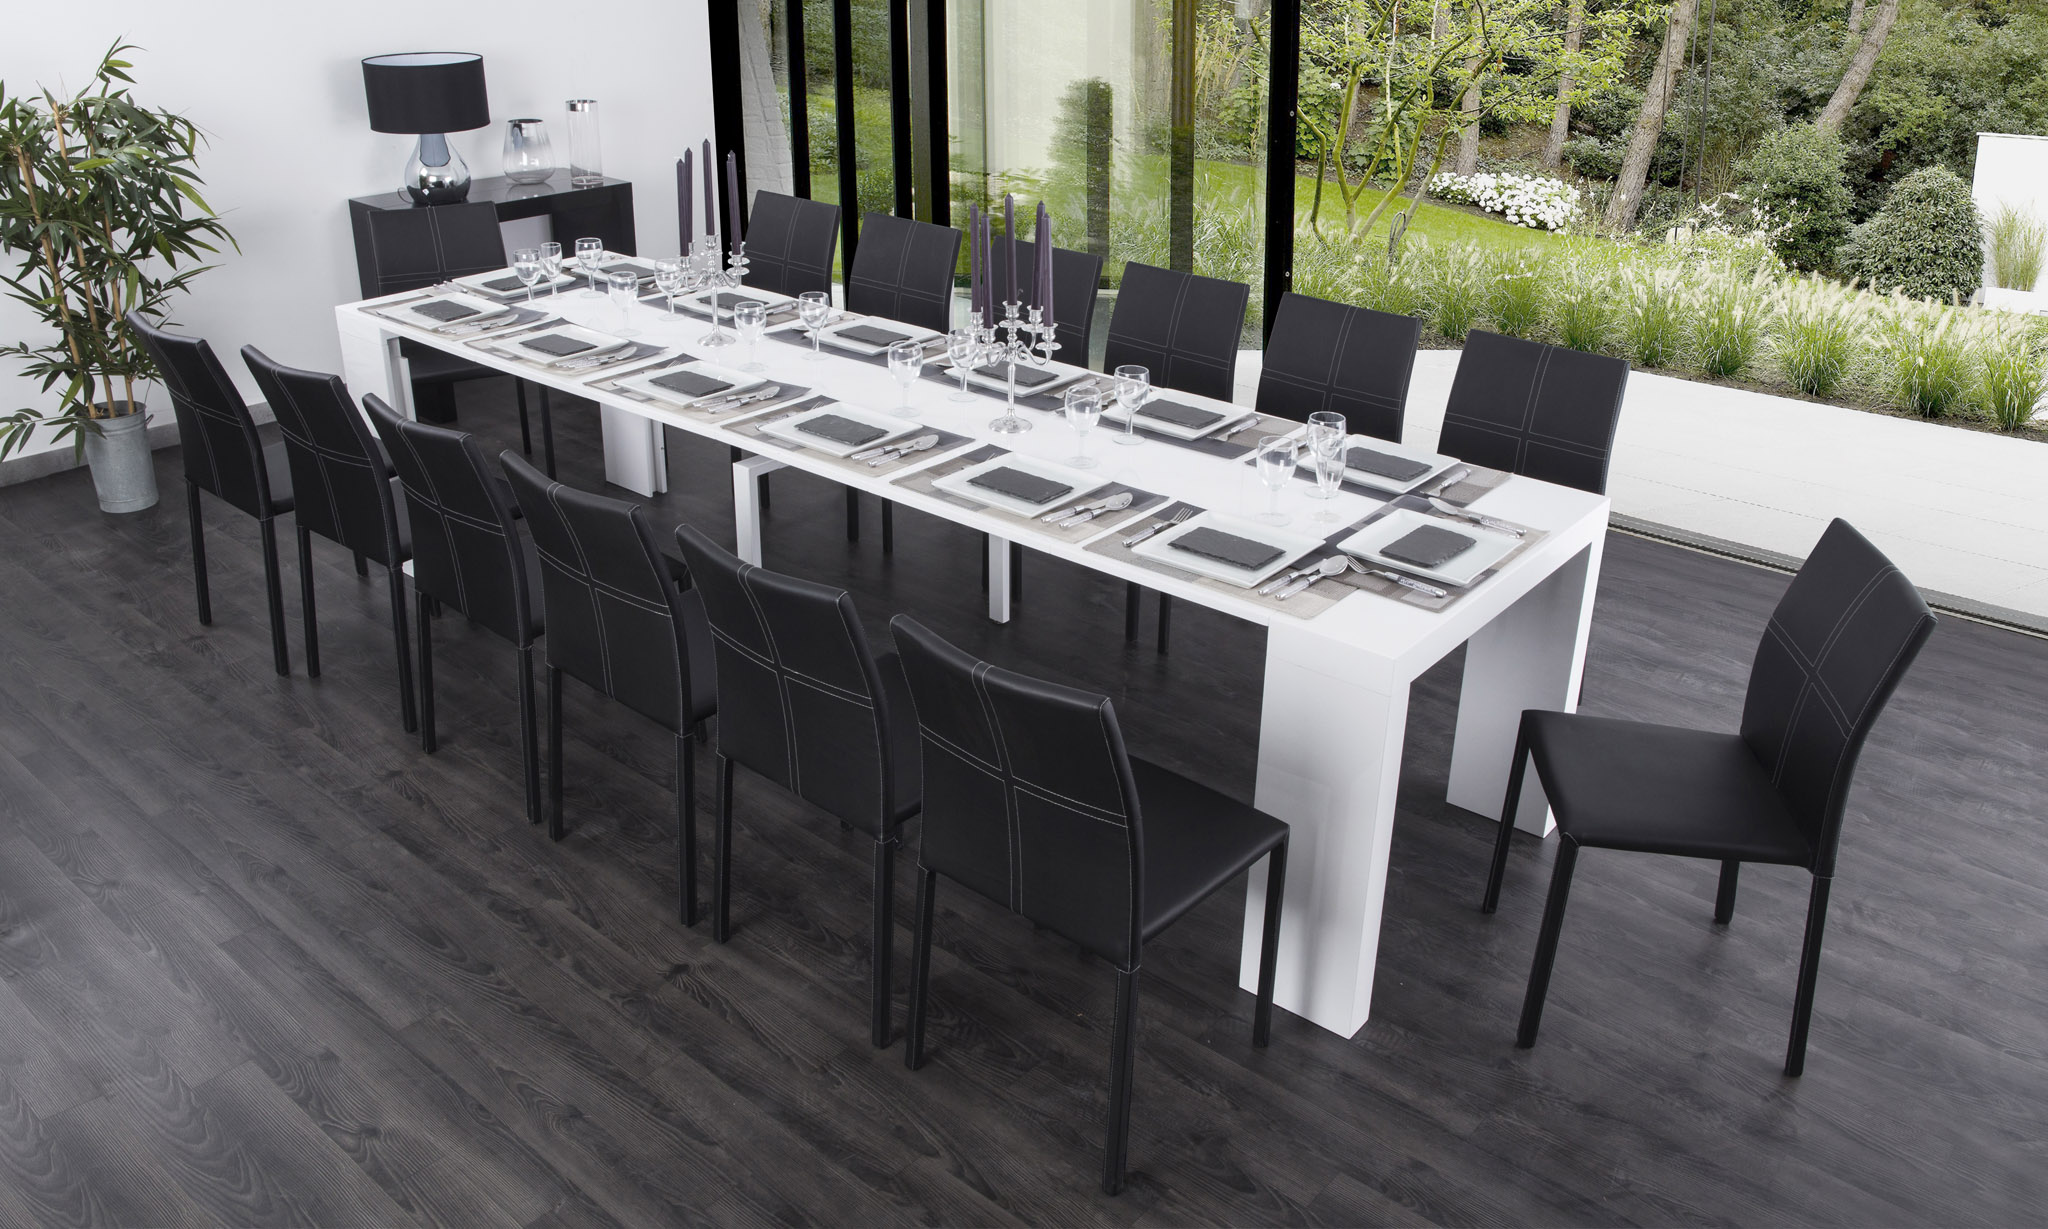 Soliving deal du jour groupon for Table extensible jusqu a 14 personnes